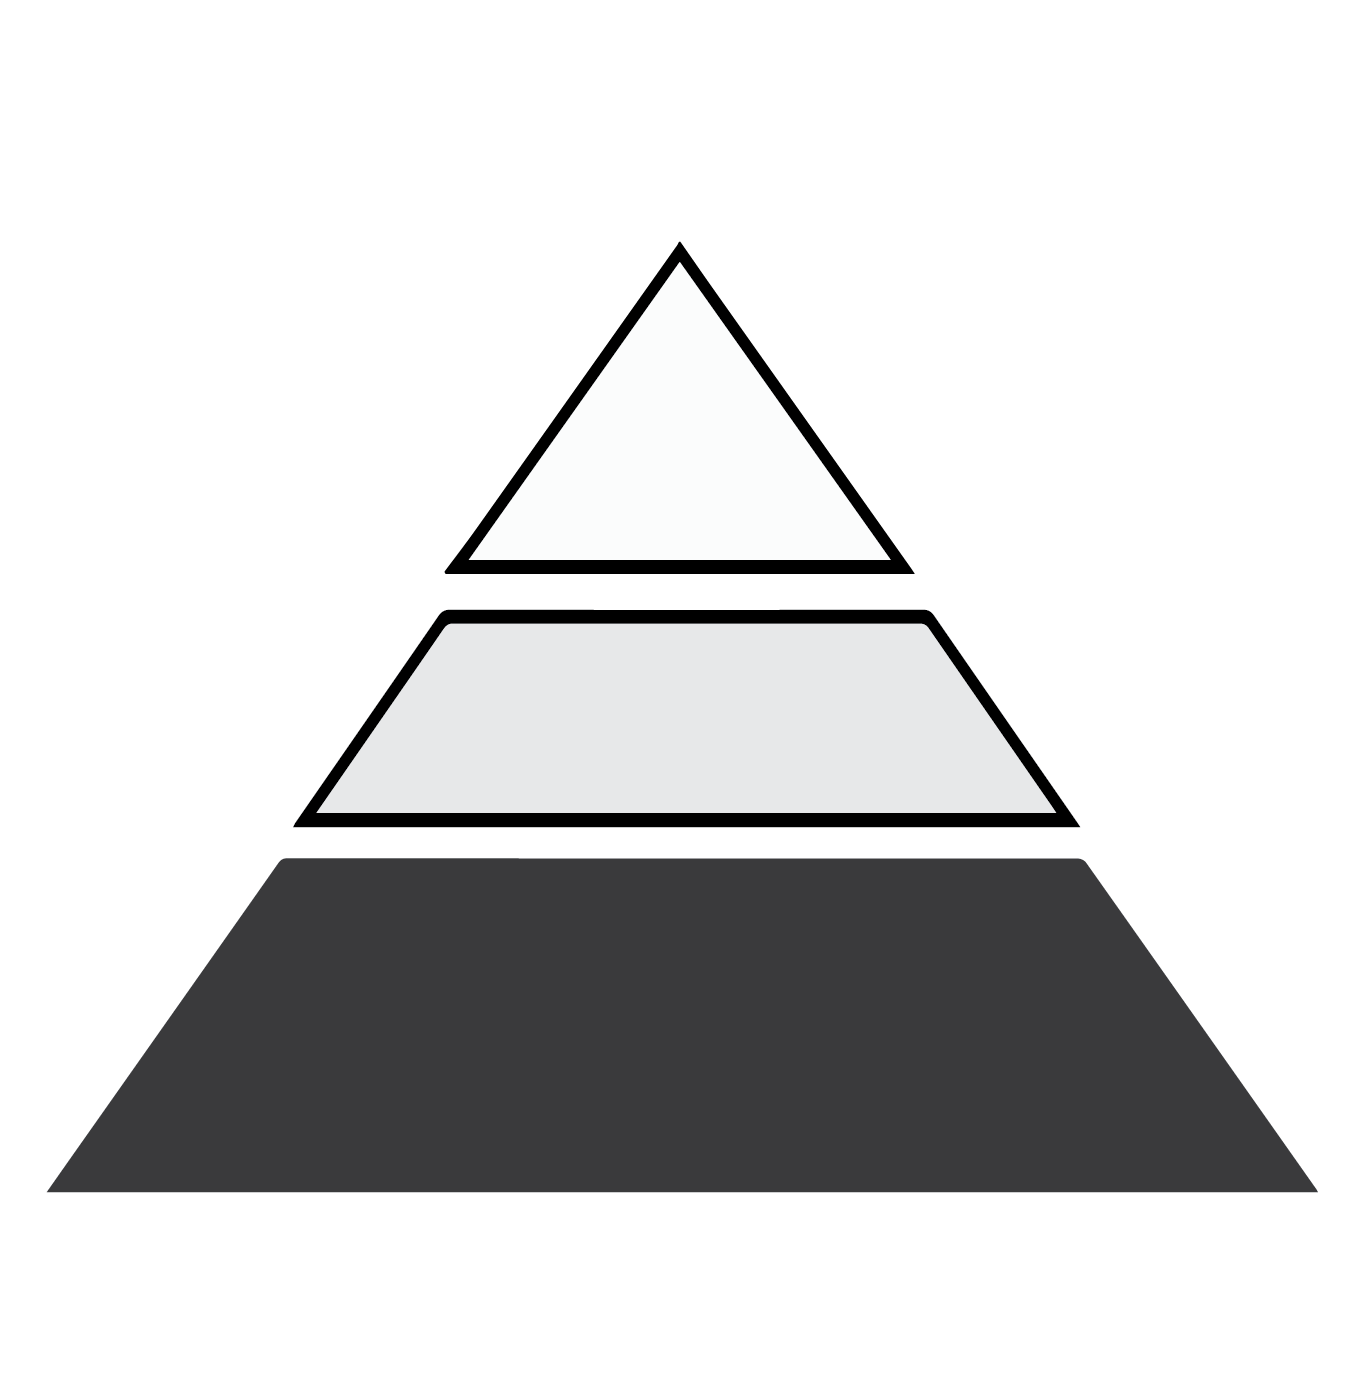 Bottom of the pyramid